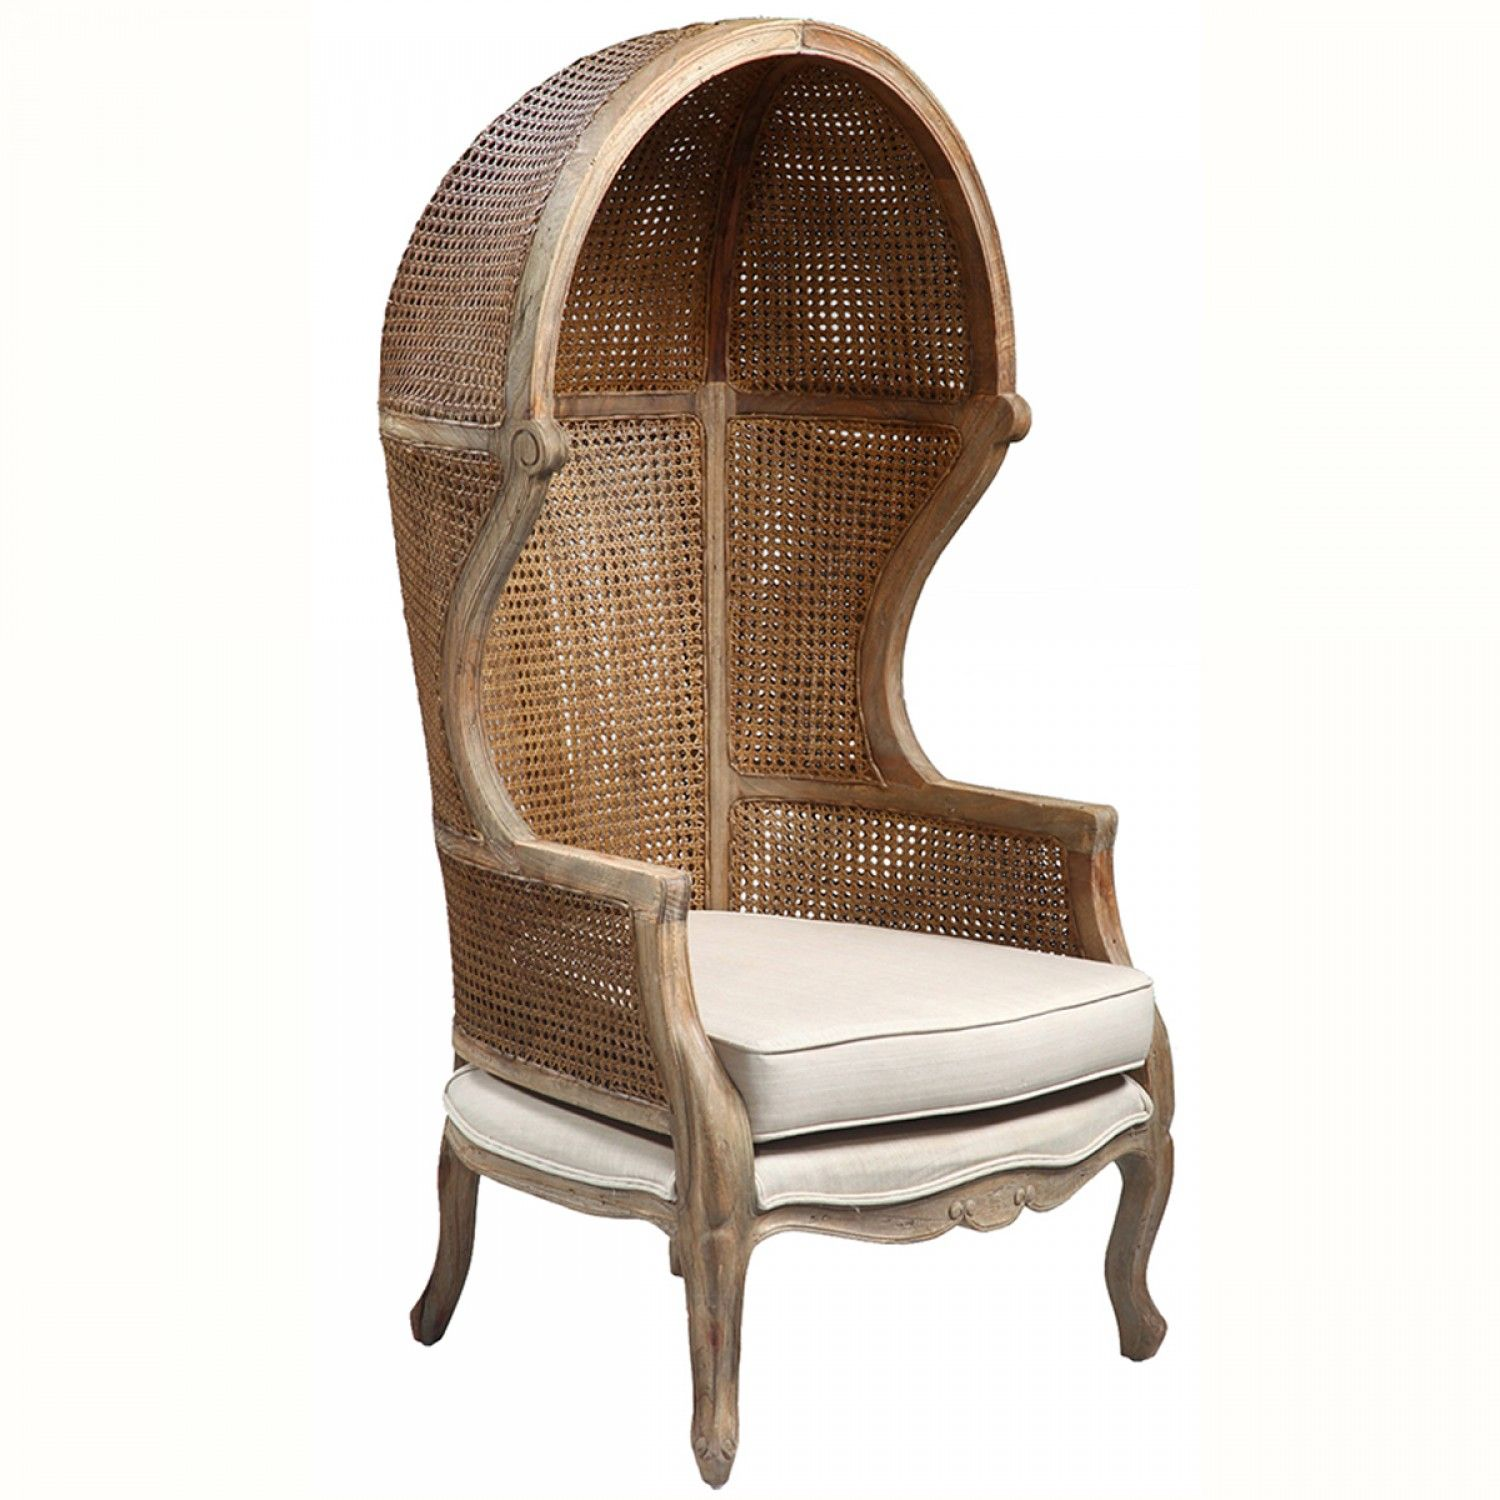 Best Lars Wicker Dome Chair 652 00 Whitedove Chairs For 400 x 300